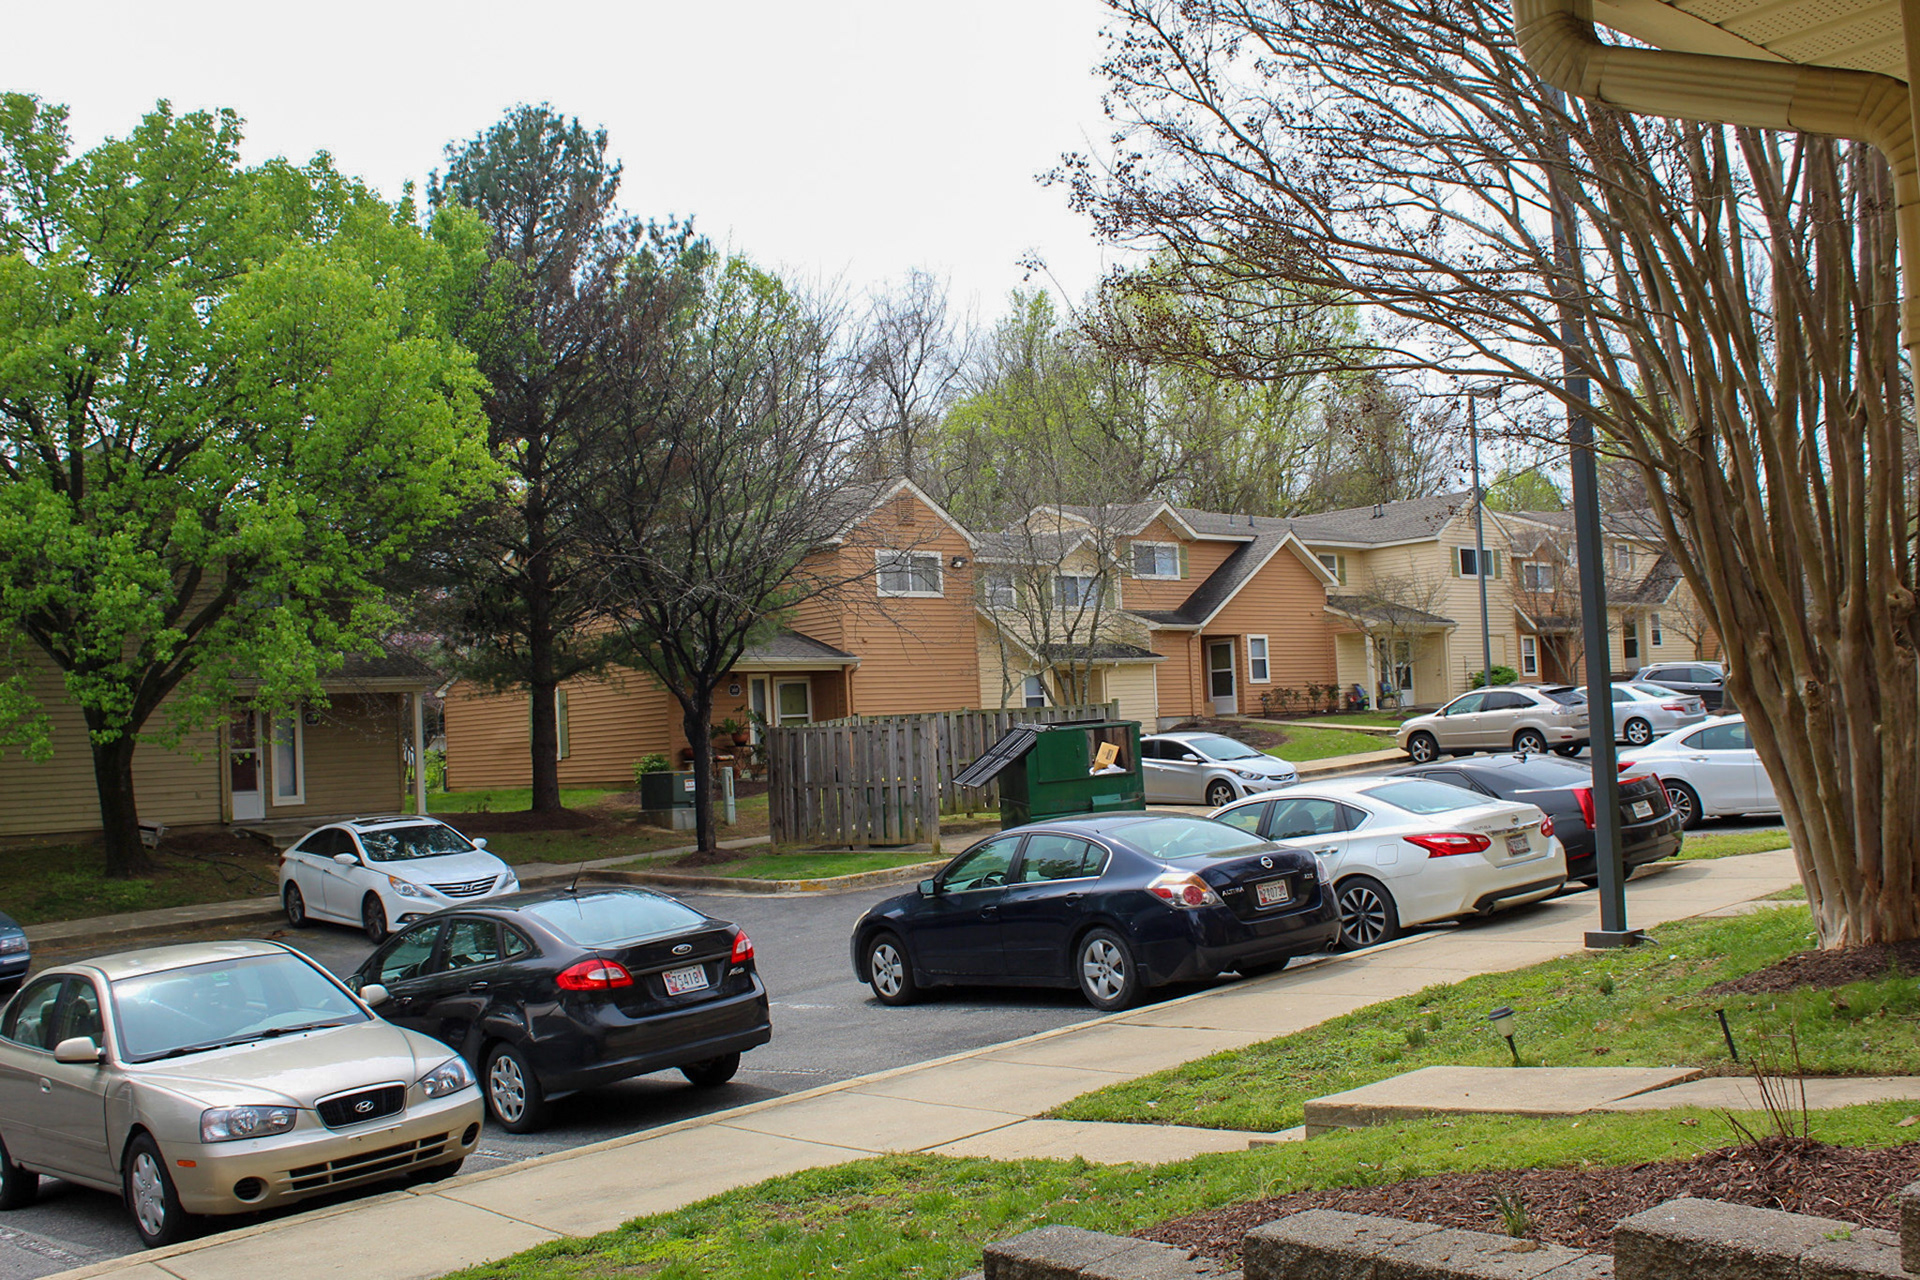 More Cars home than usual in my housing complex- April 6